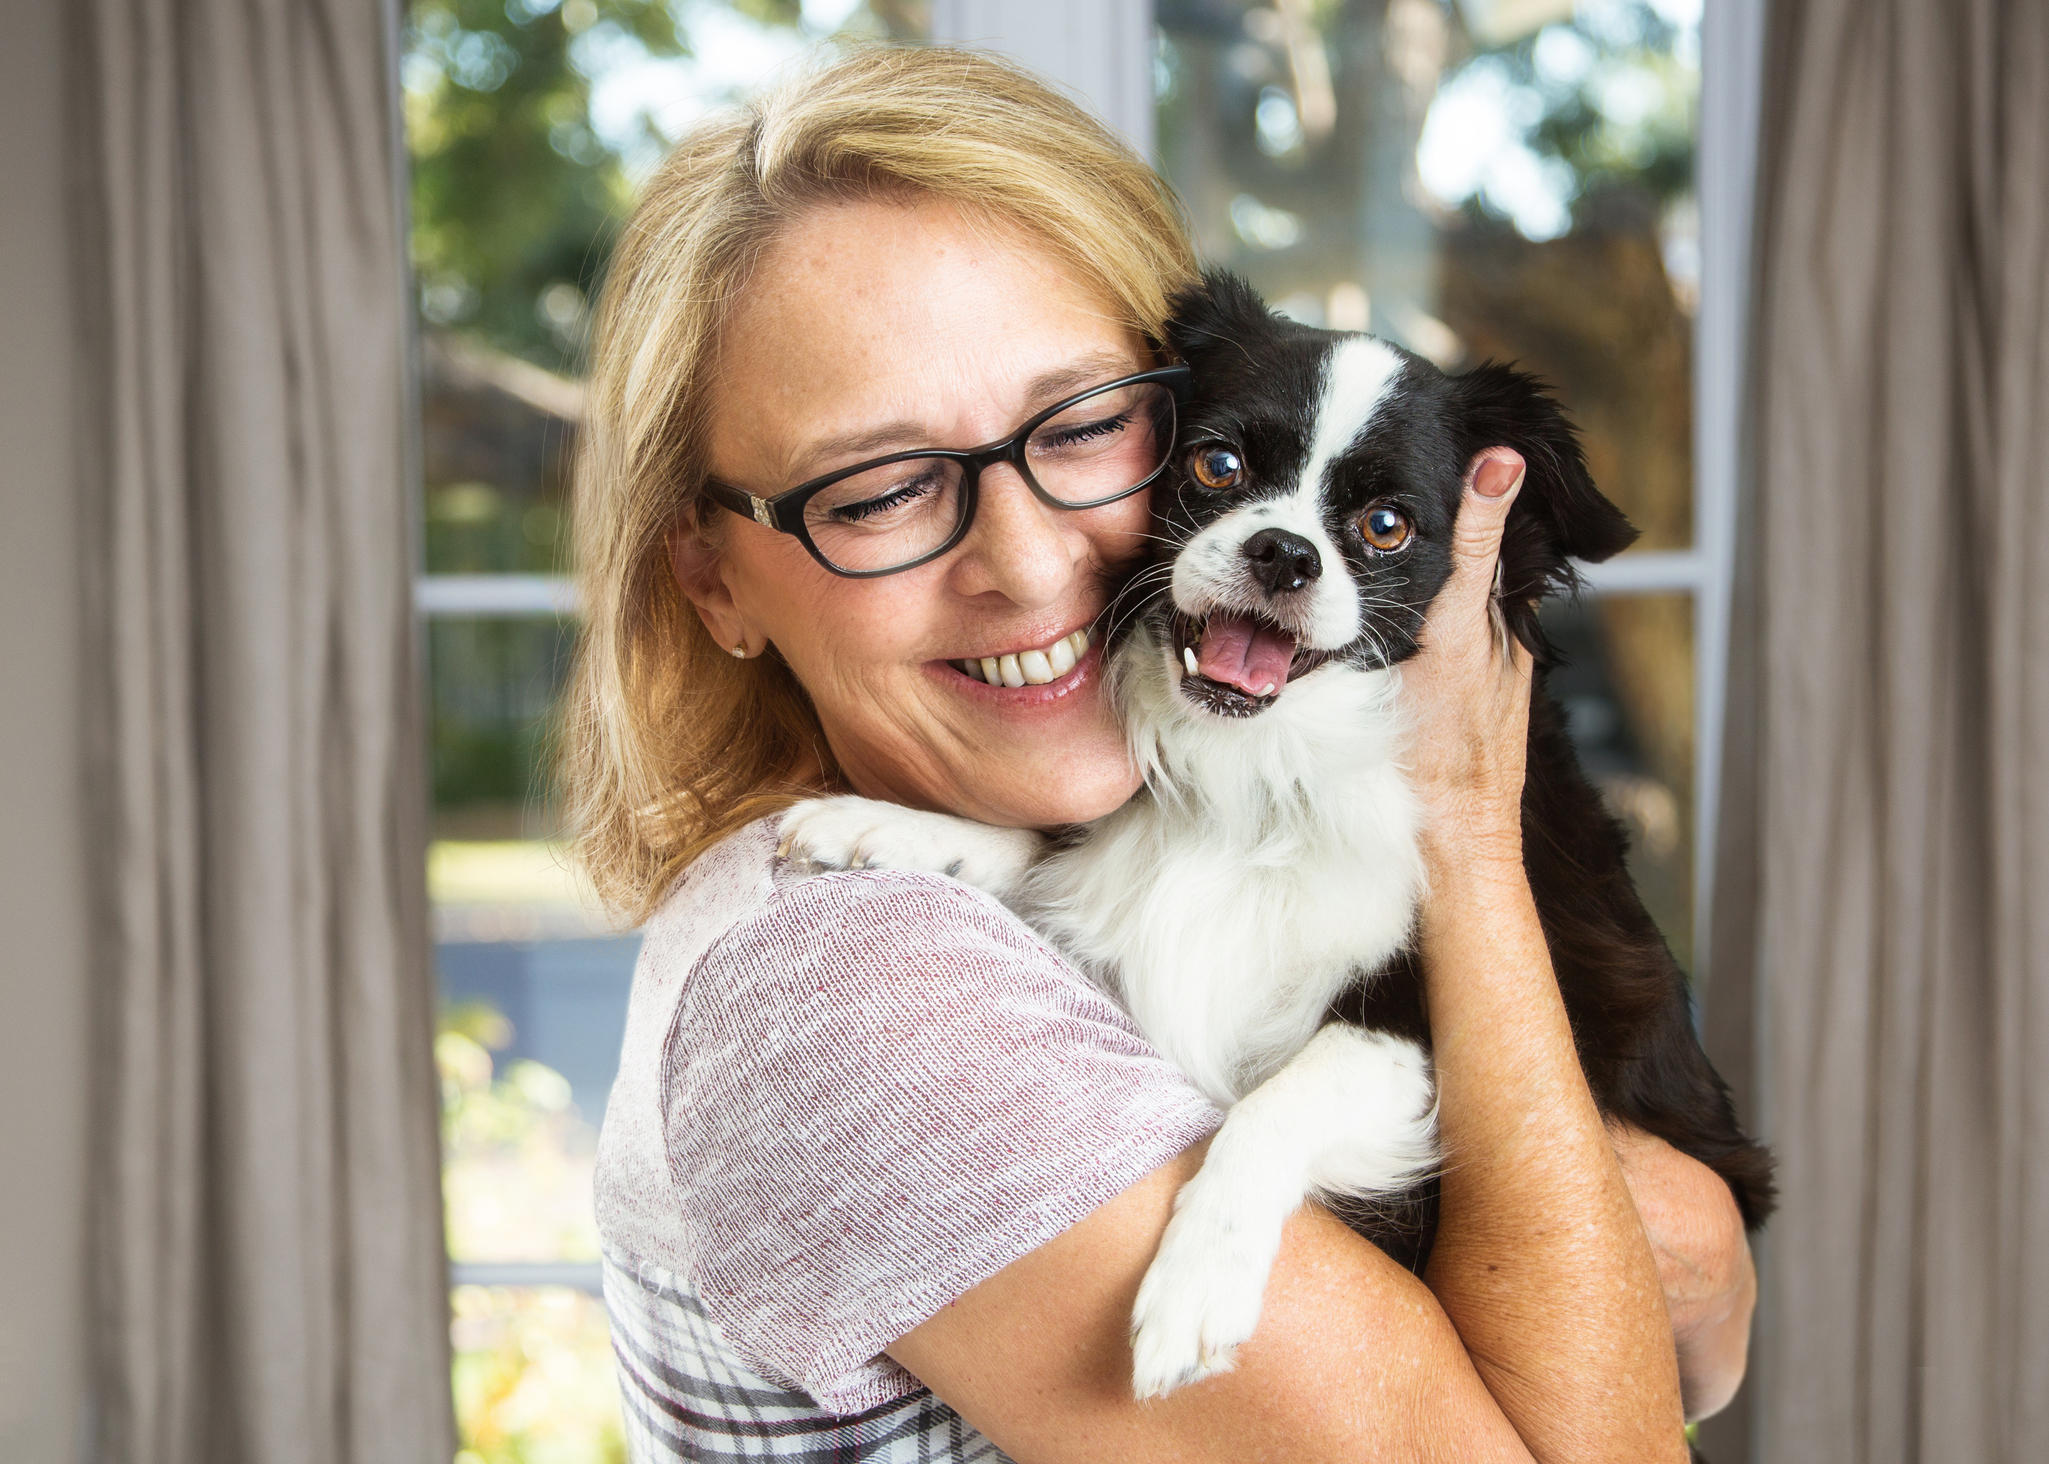 Woman happily with dog